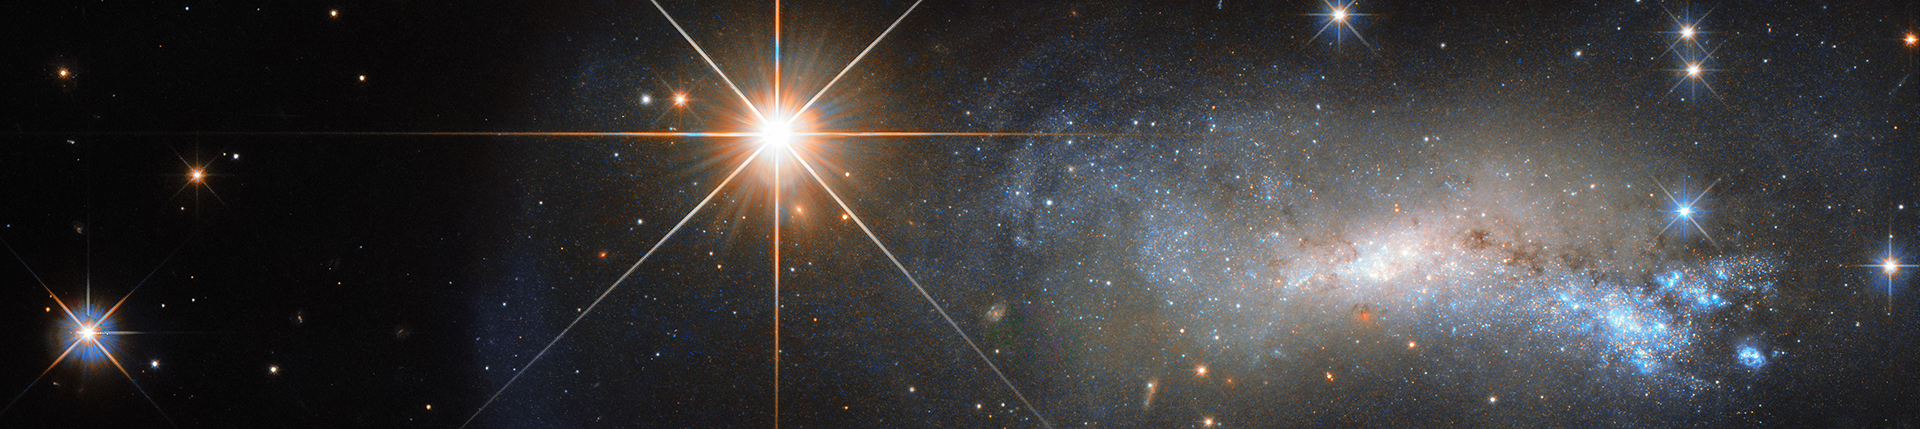 Hubble's Bright Shining Lizard Star